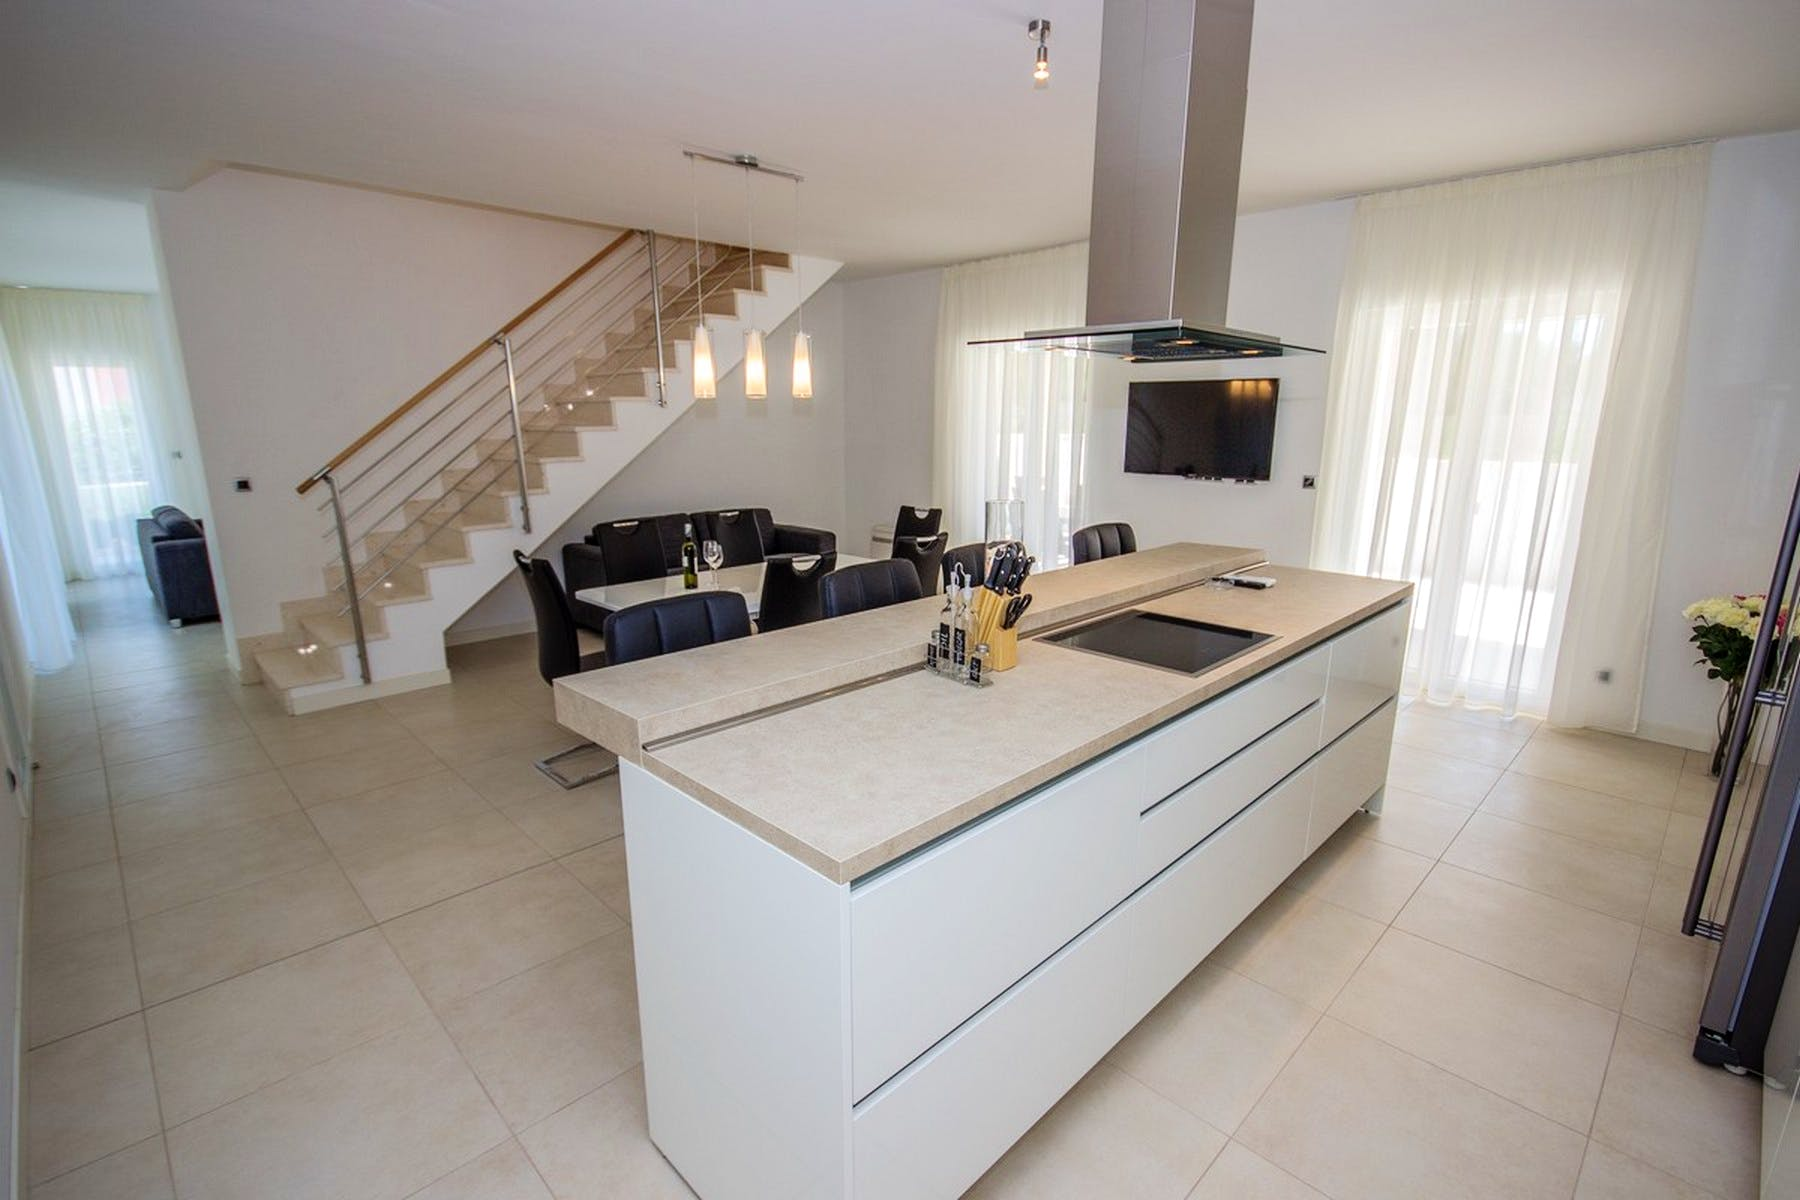 KItchen with an island counter